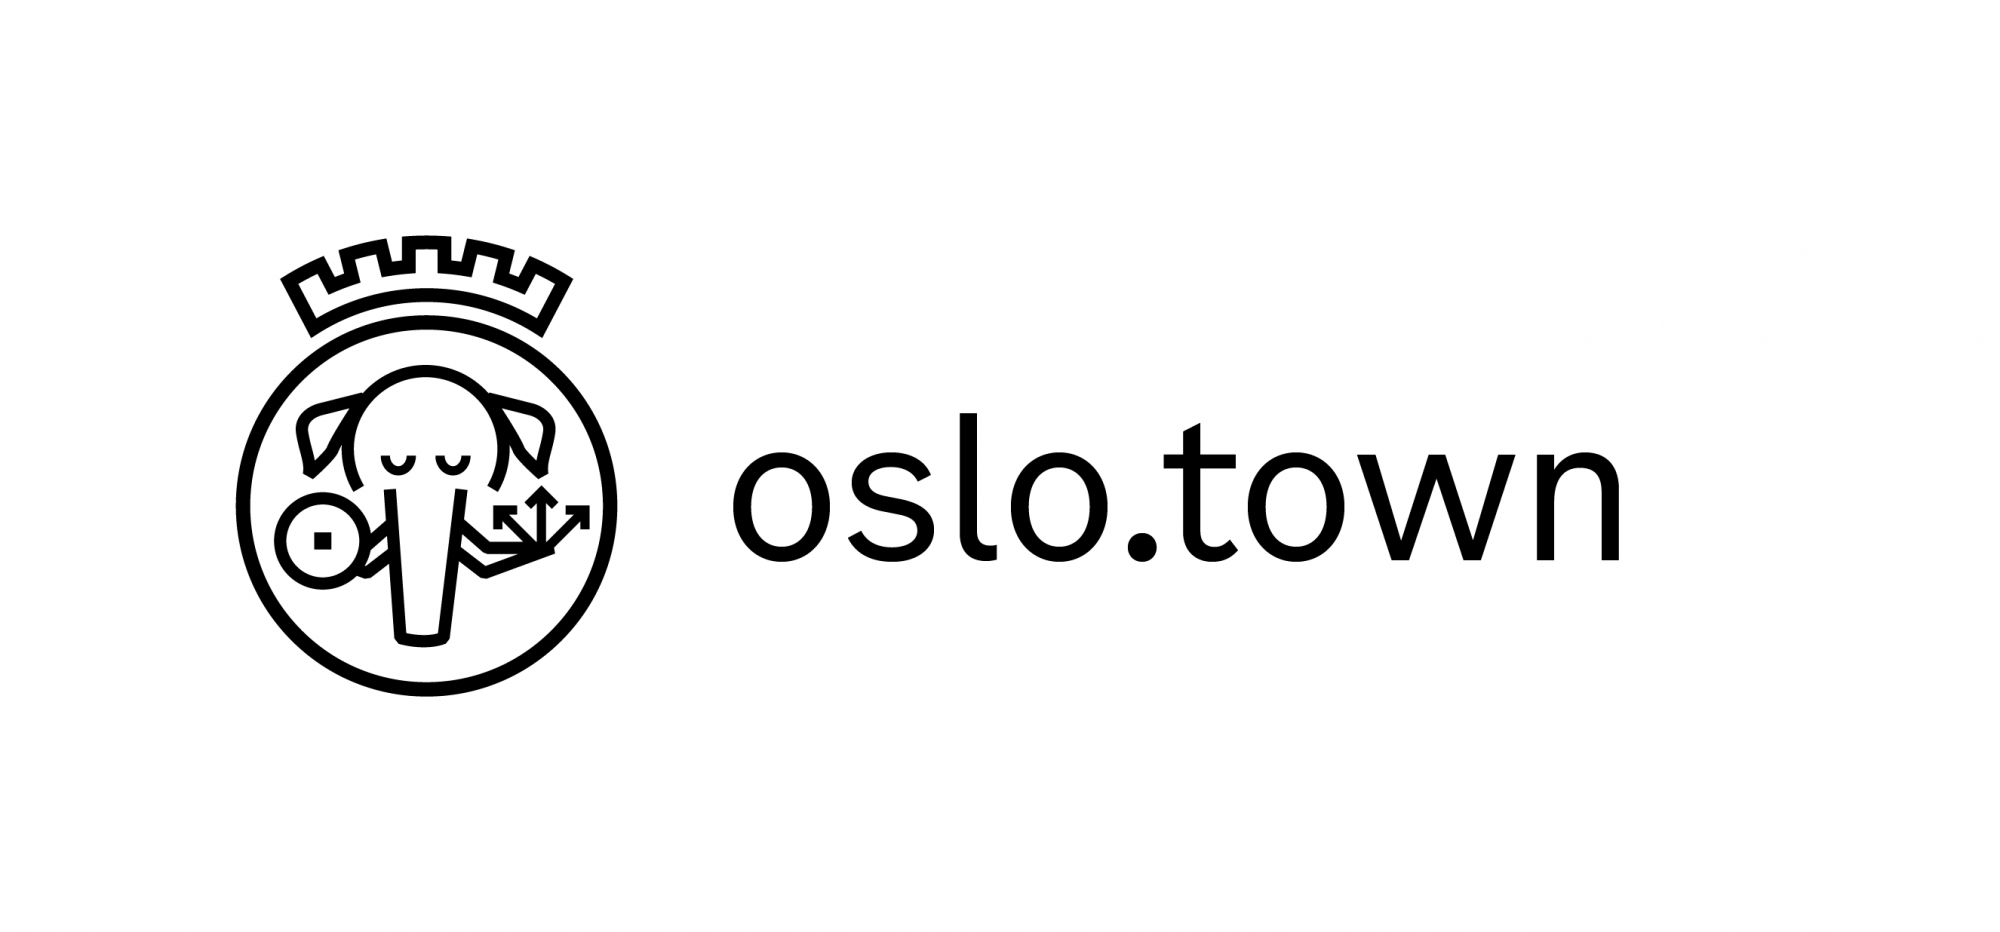 A logo that riffs on the Oslo Kommune logo, but features a mastodon instead of St Hallvard.